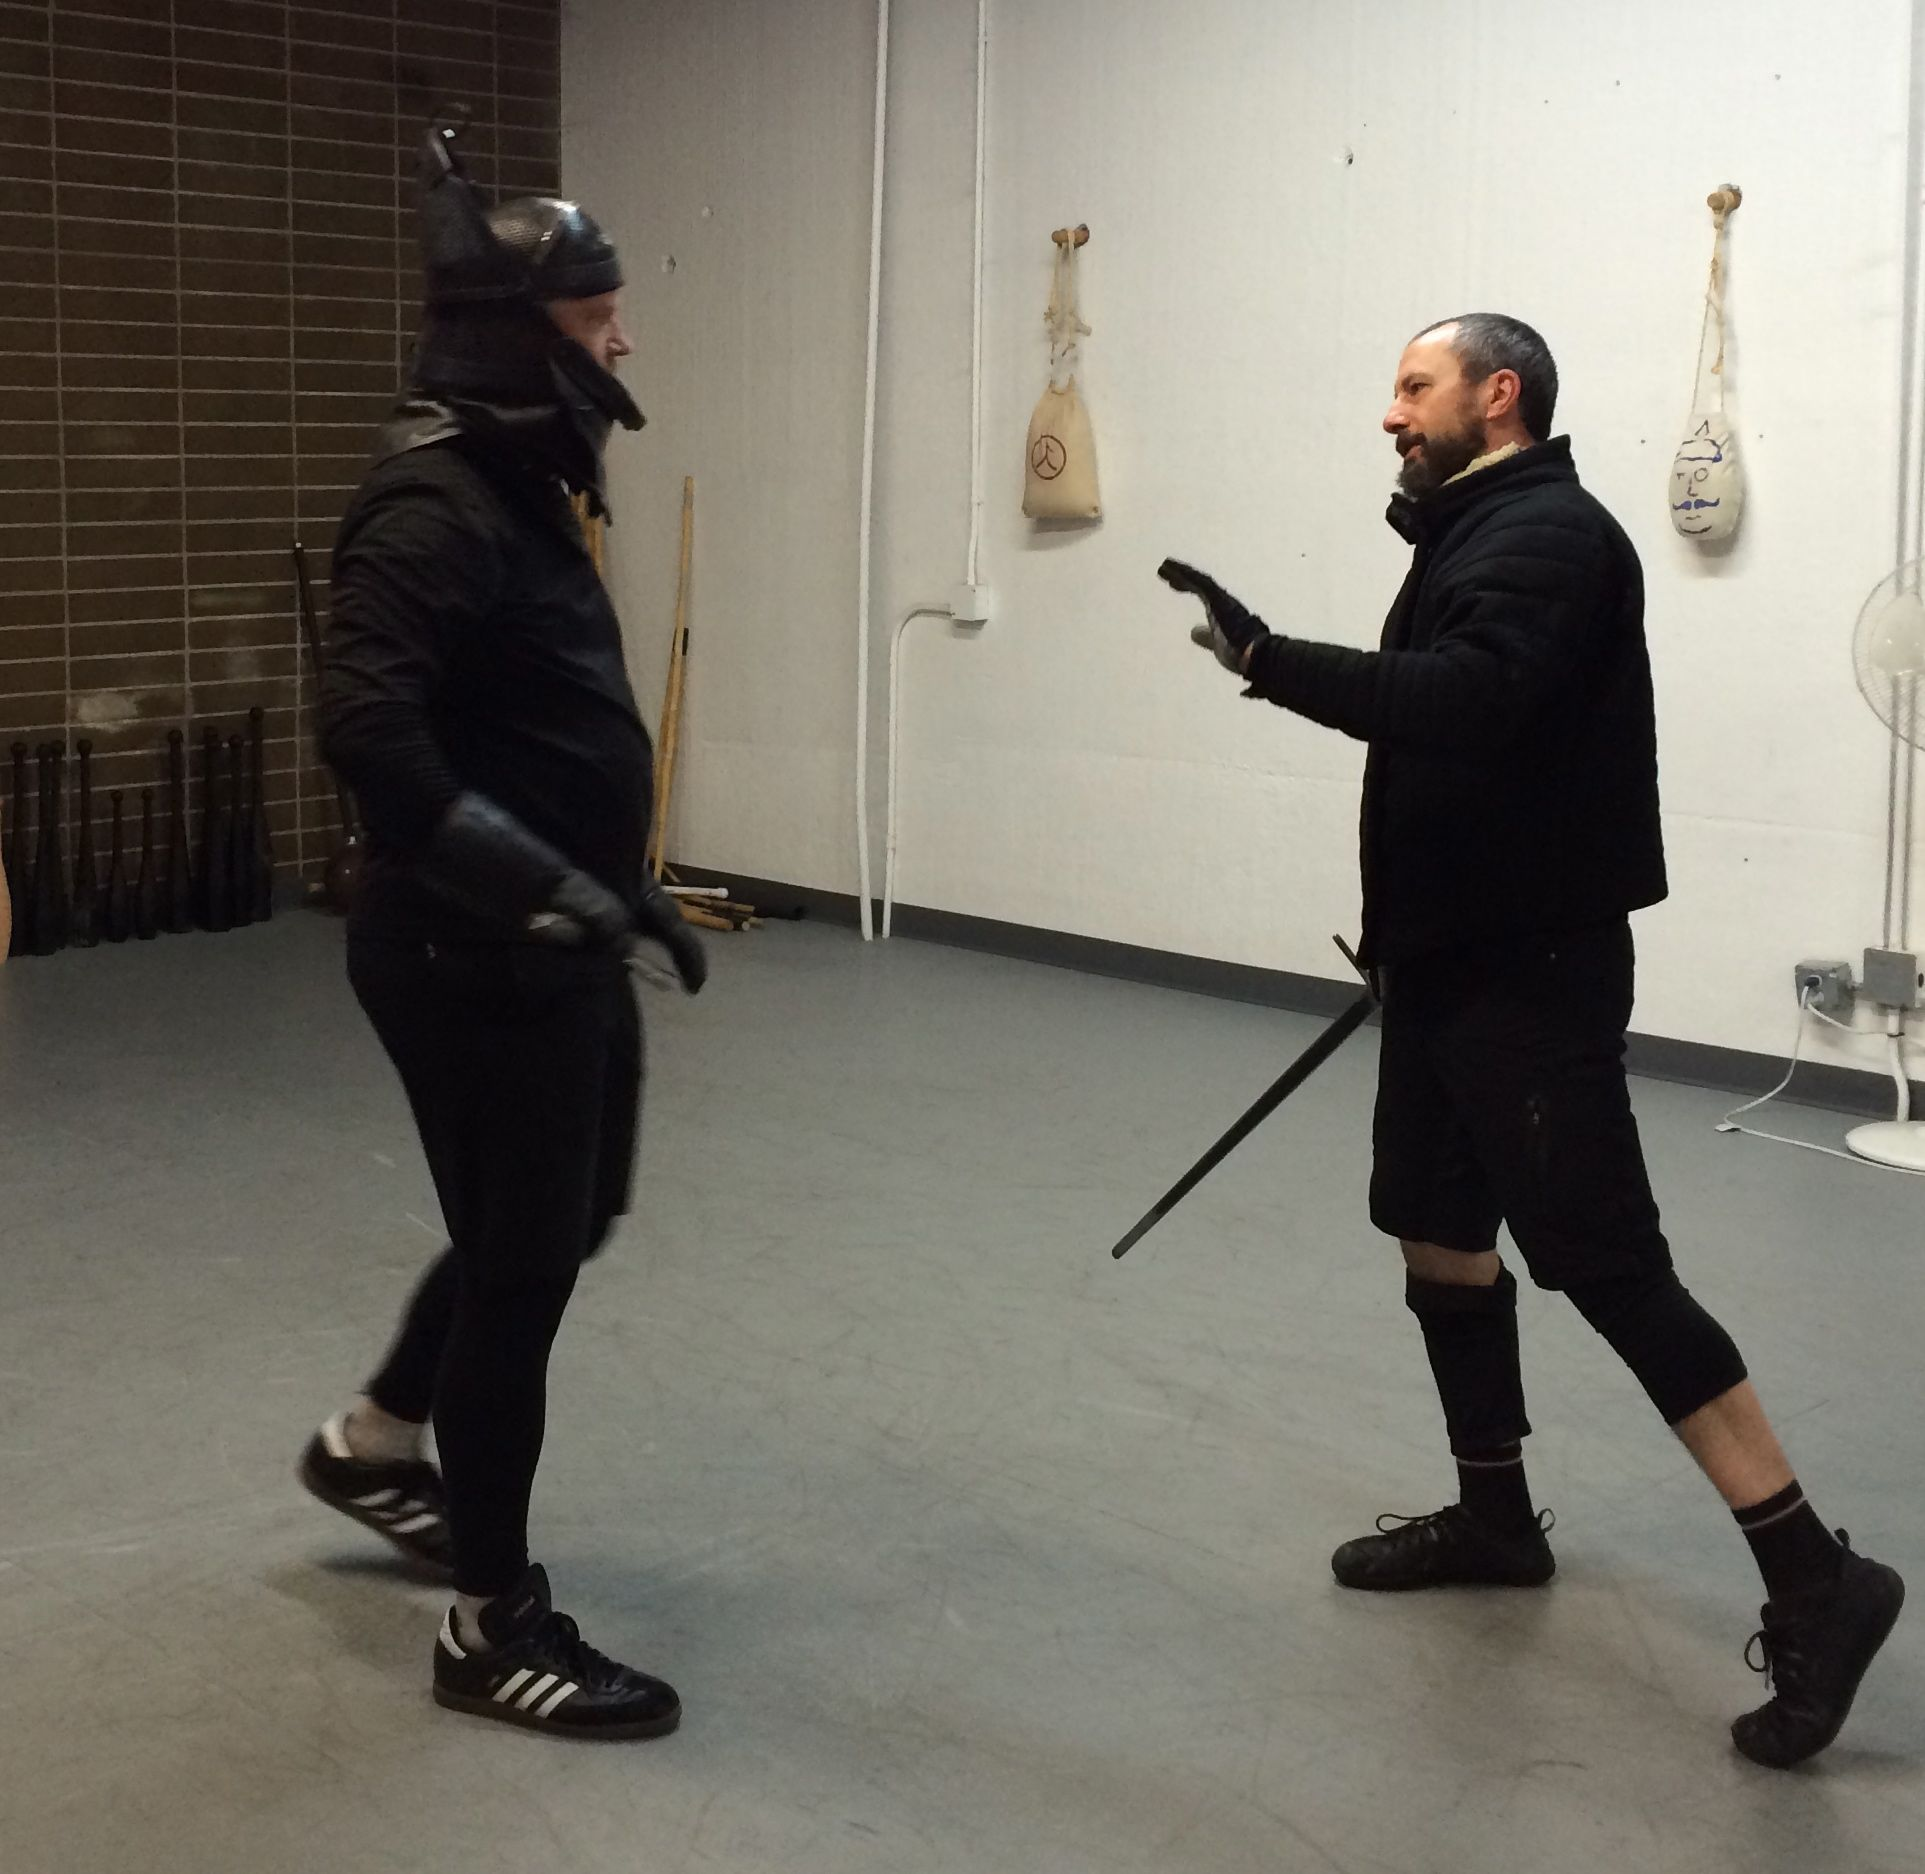 Longsword coaching